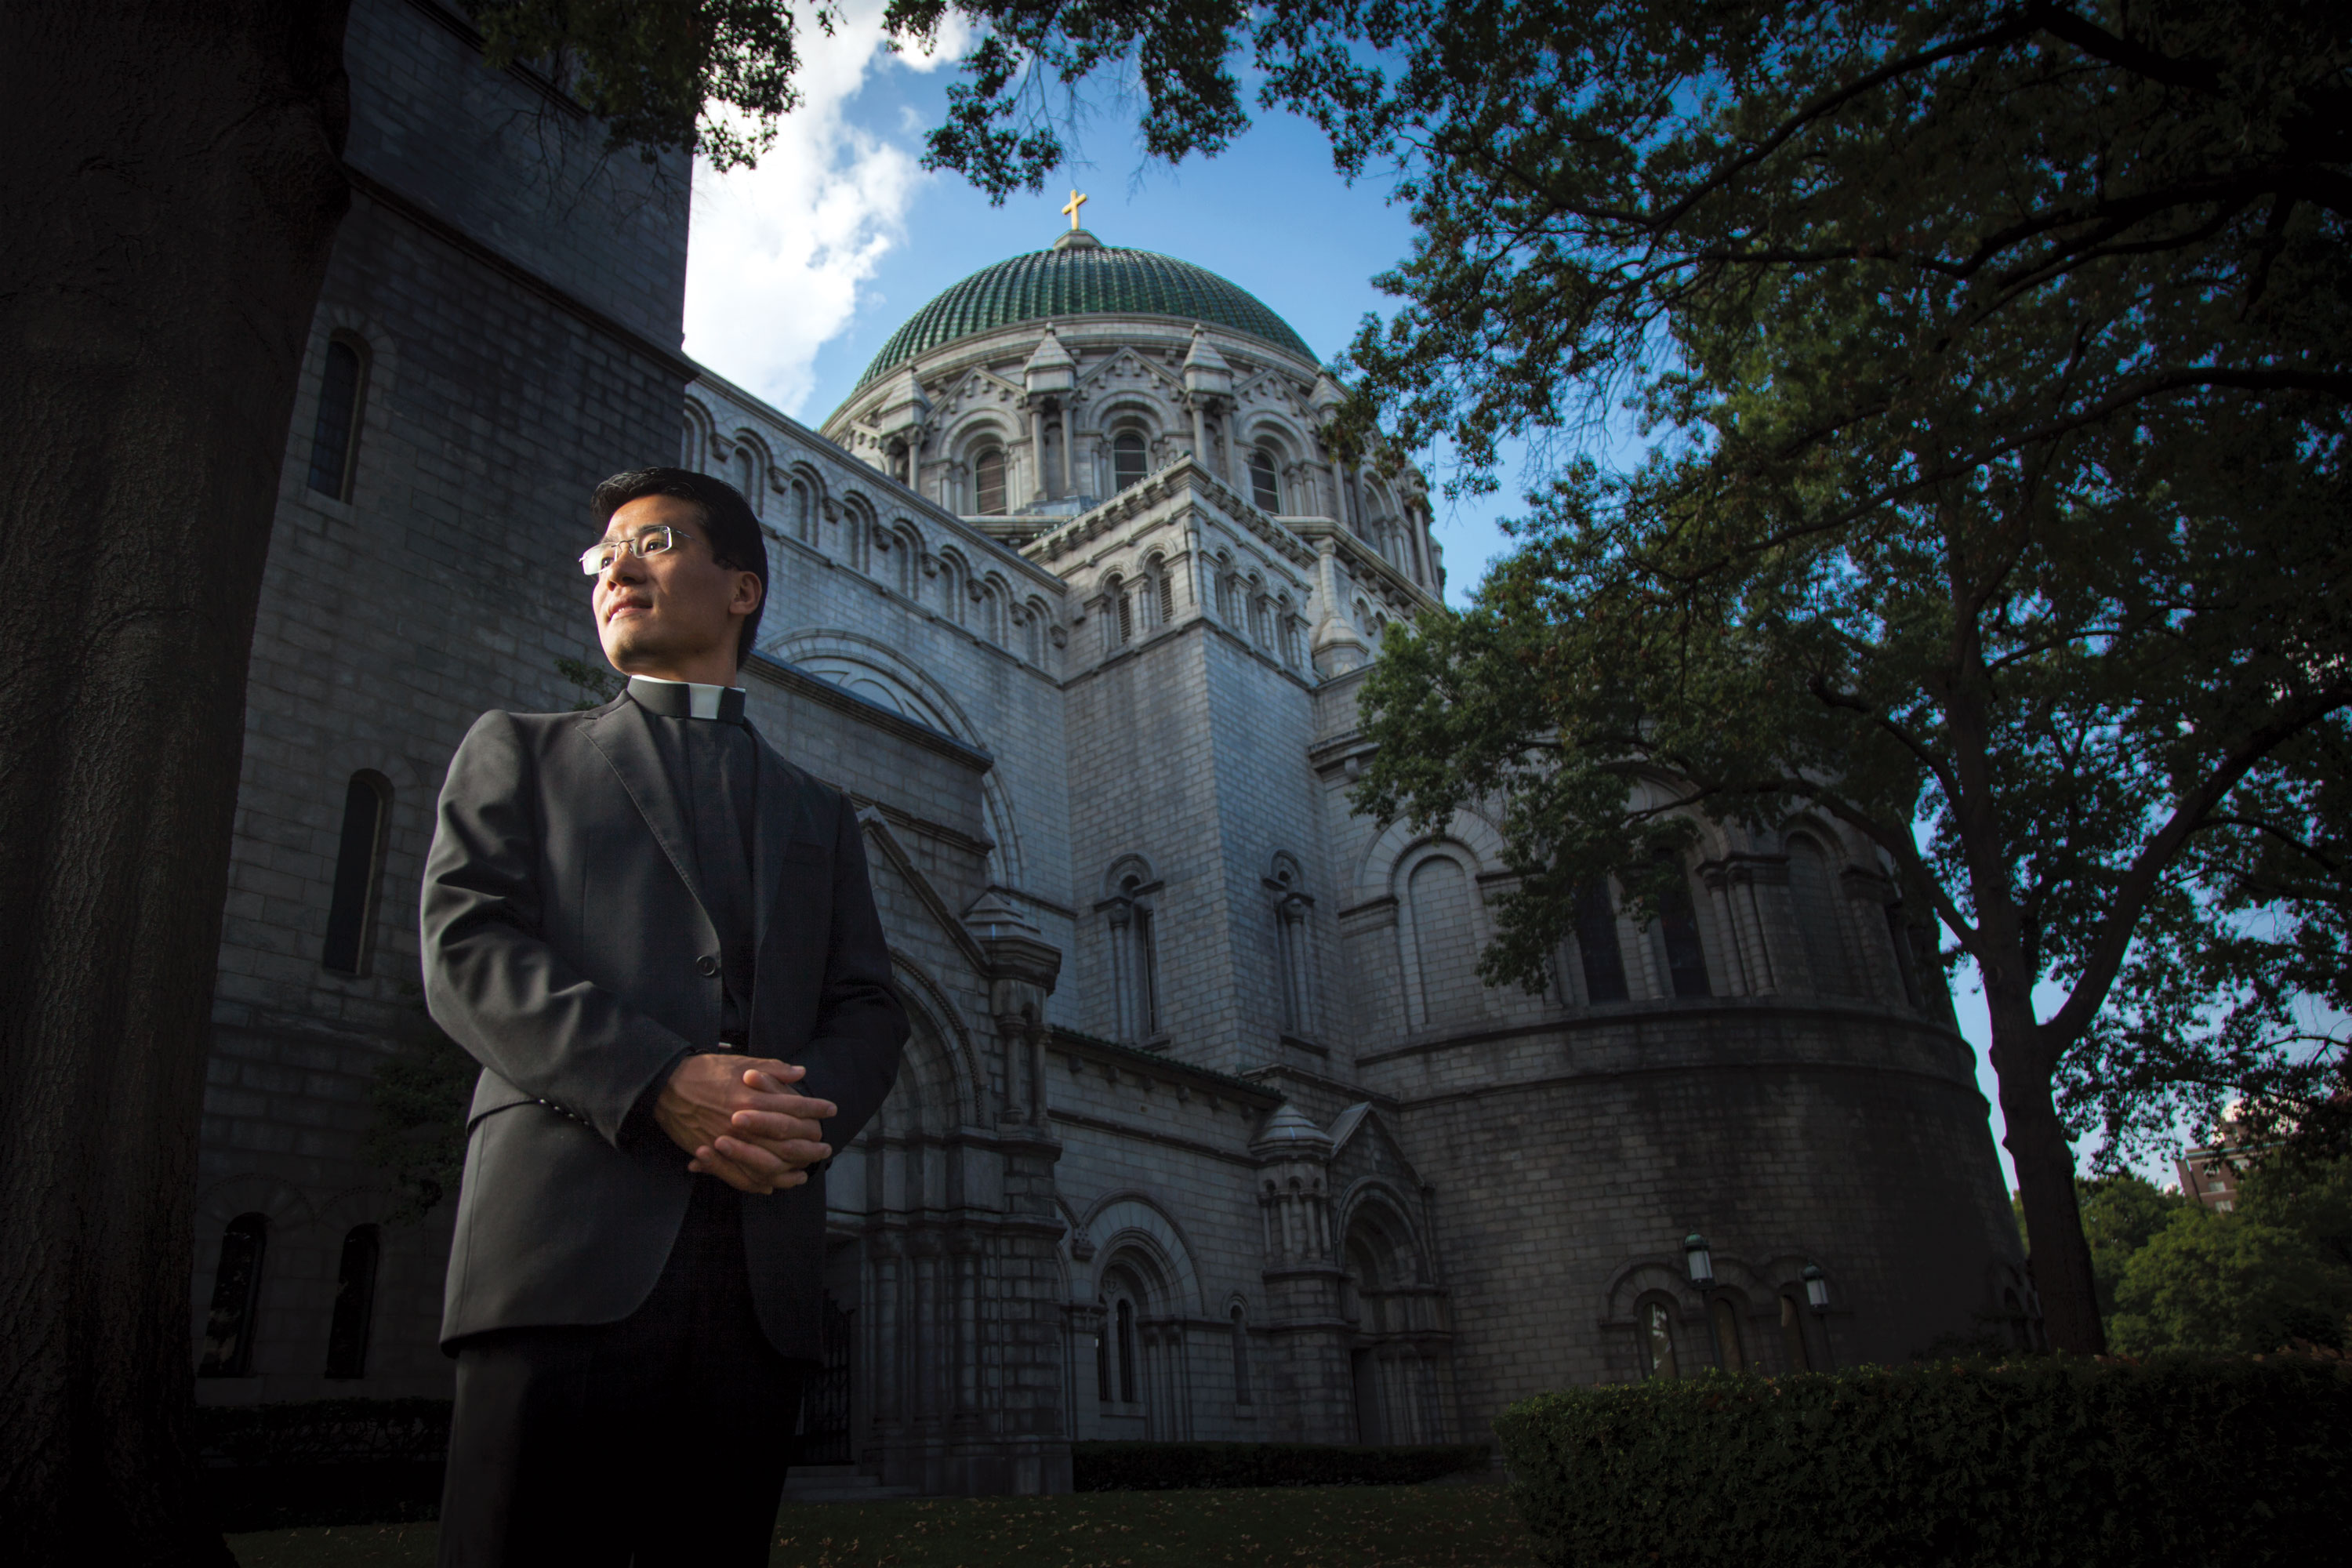 Father Xiu Hui Joseph Jiang stands in front of the Cathedral Basilica of Saint Louis. His first assignment after being ordained in 2010 was to serve as associate pastor at the cathedral, where he met the Maritain family. (Photo by Matt Marcinkowski)